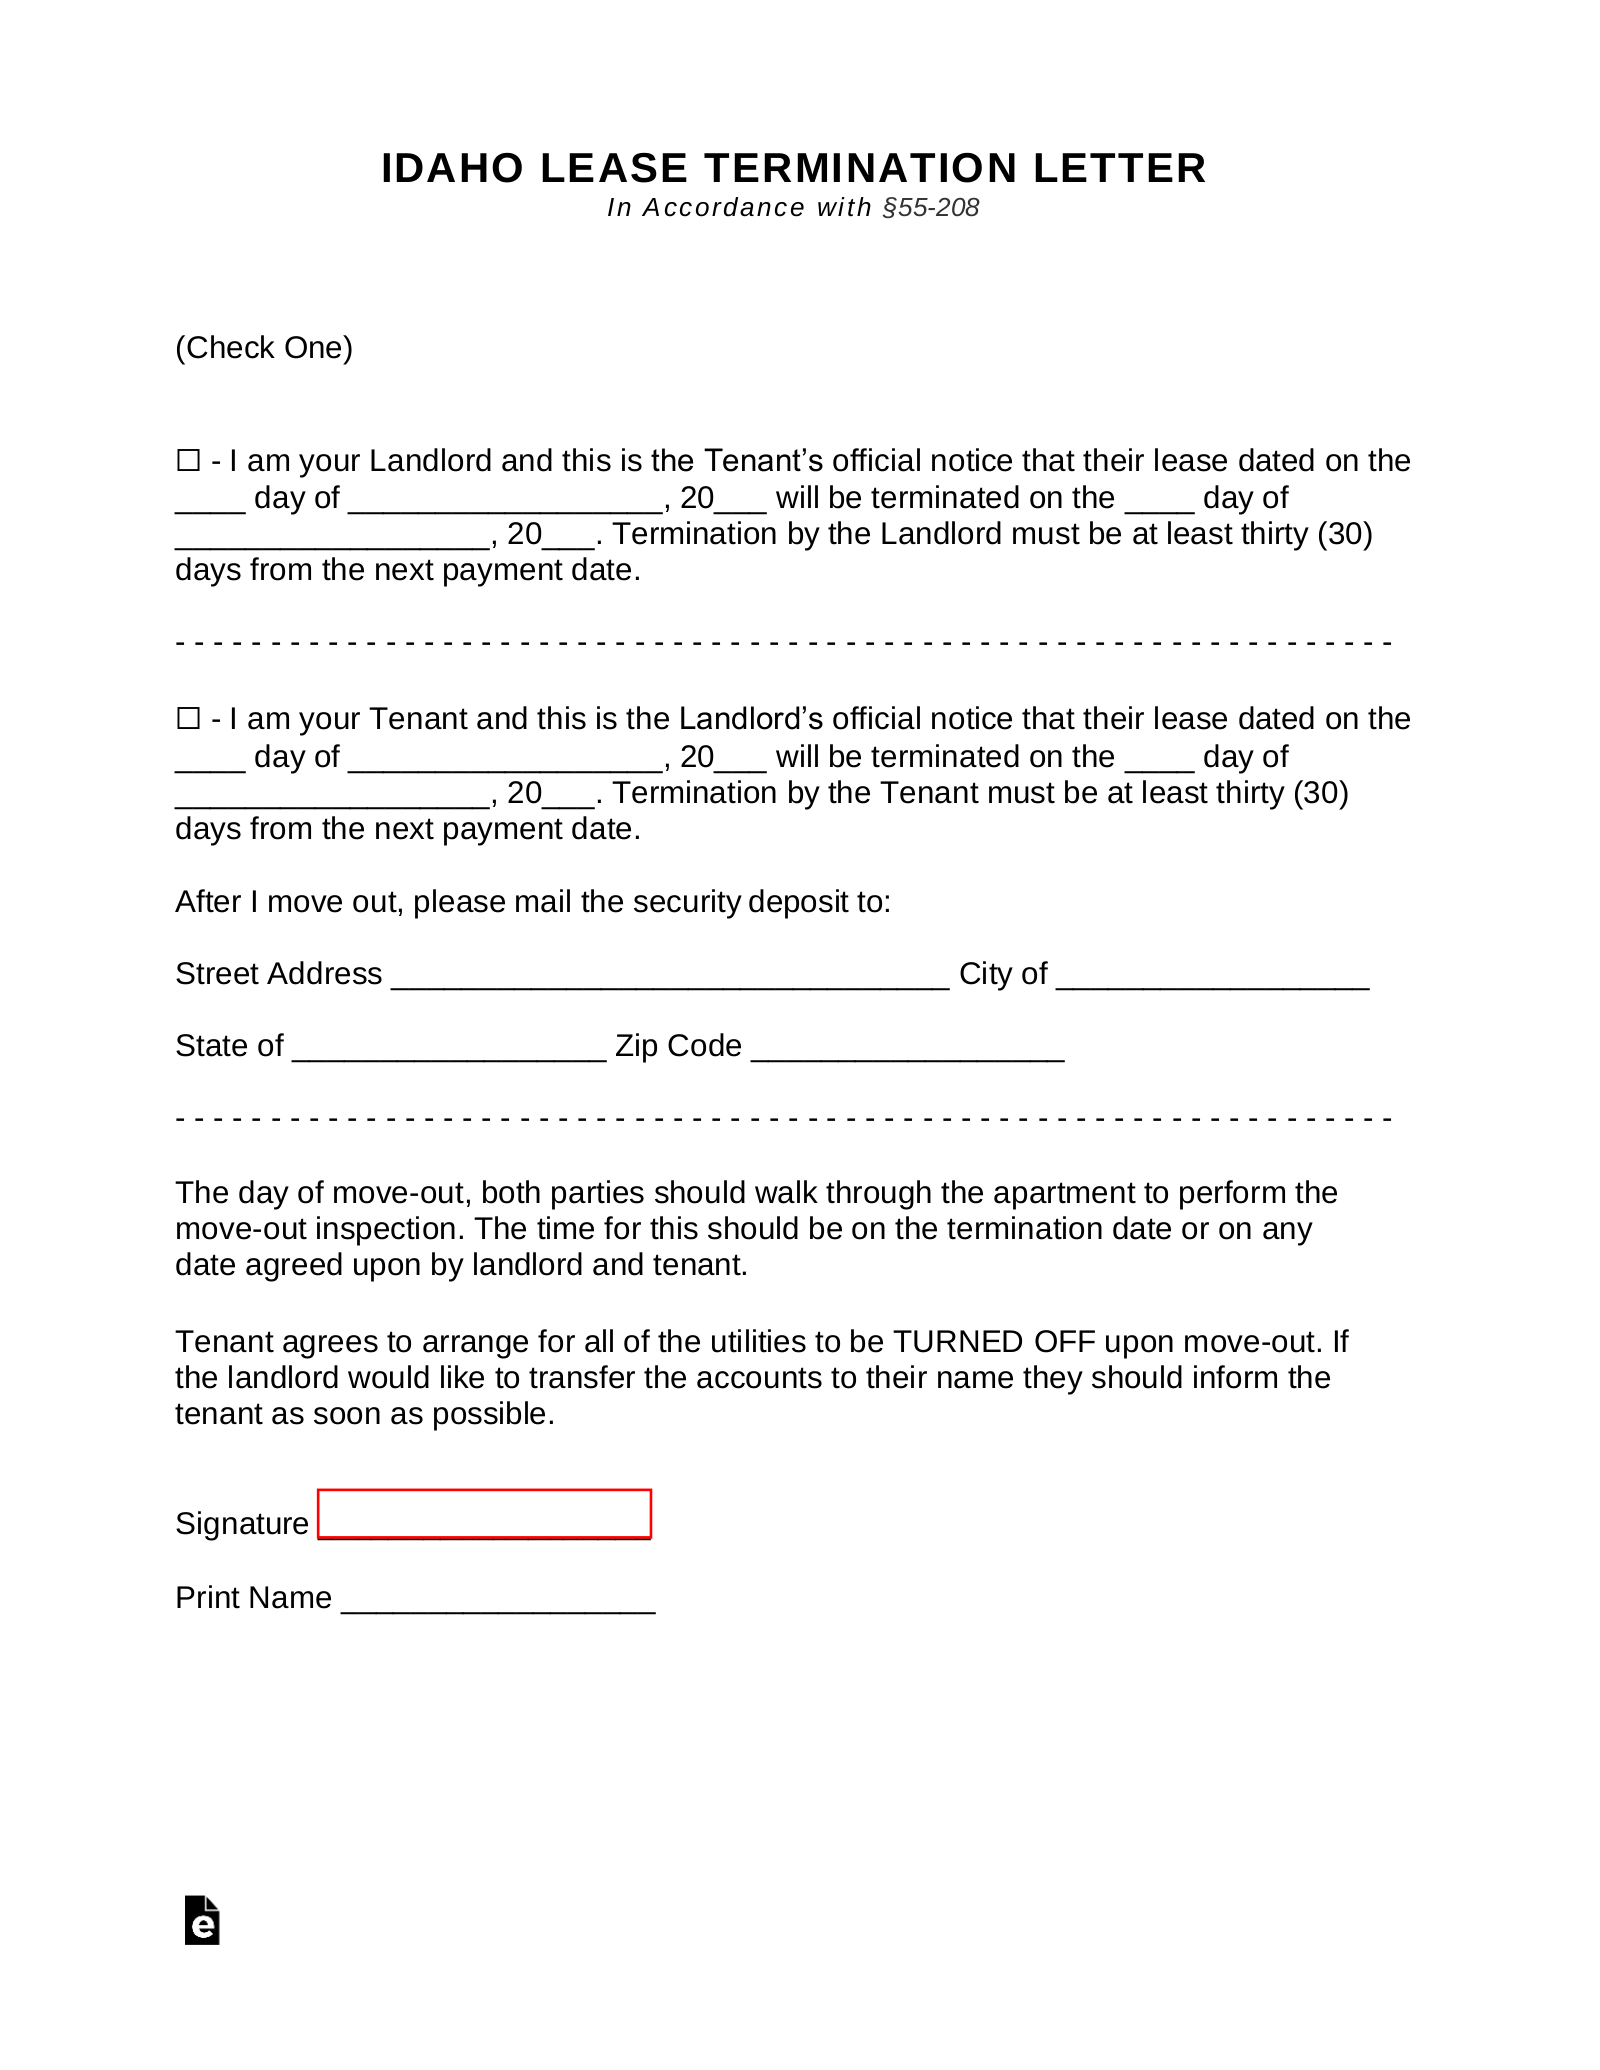 Free Idaho Termination Lease Termination Letter Form 30